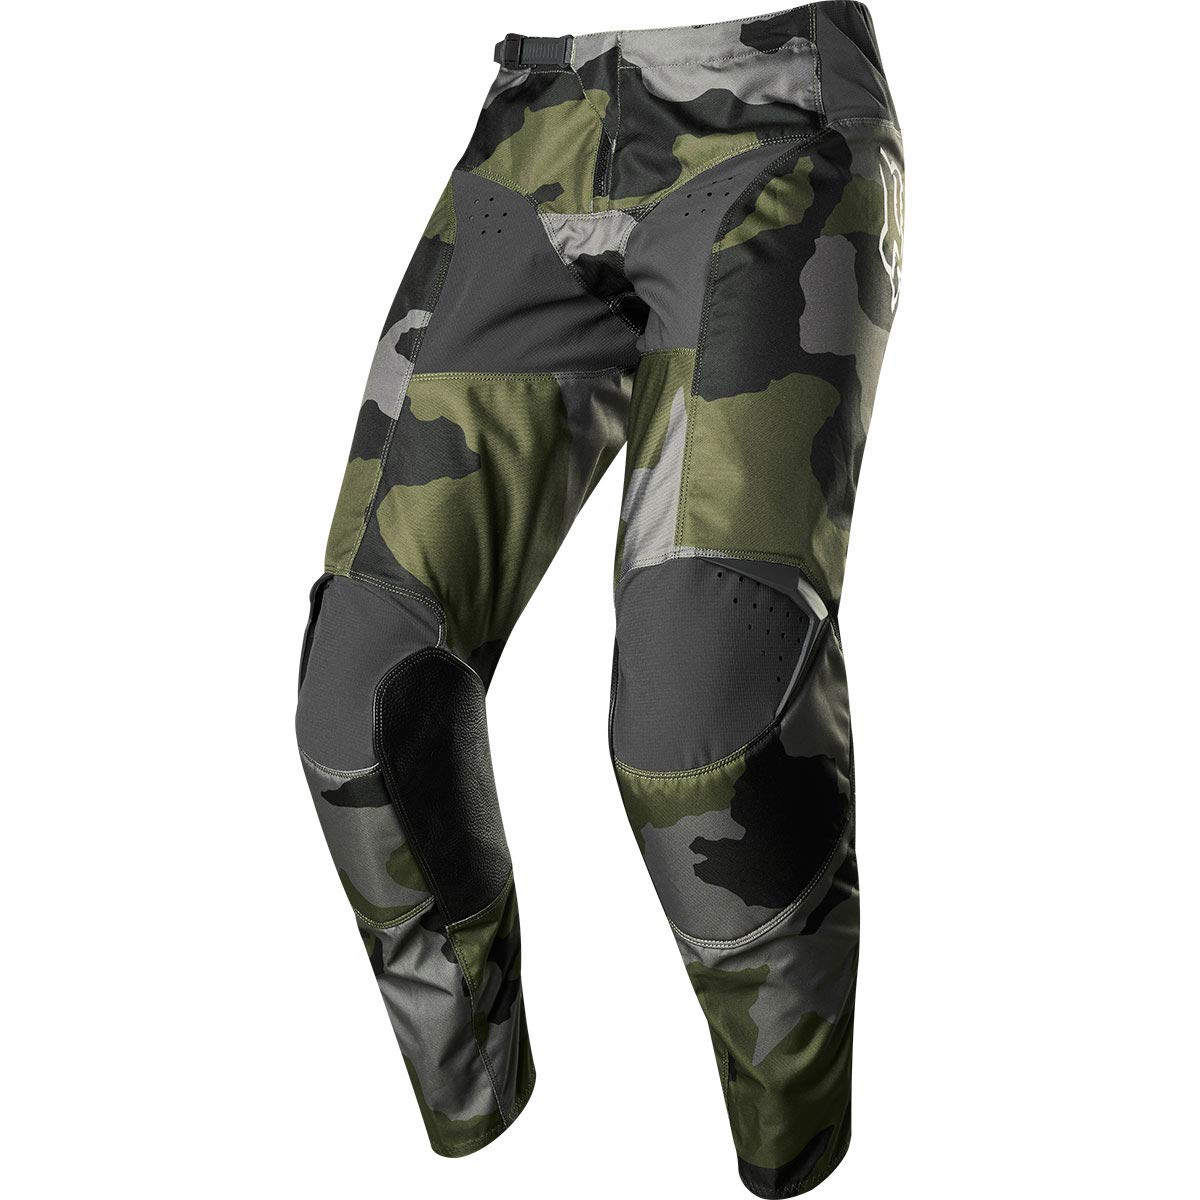 Fox Racing 2019 180 Pants - Przm Camo SE (30) by Fox Racing